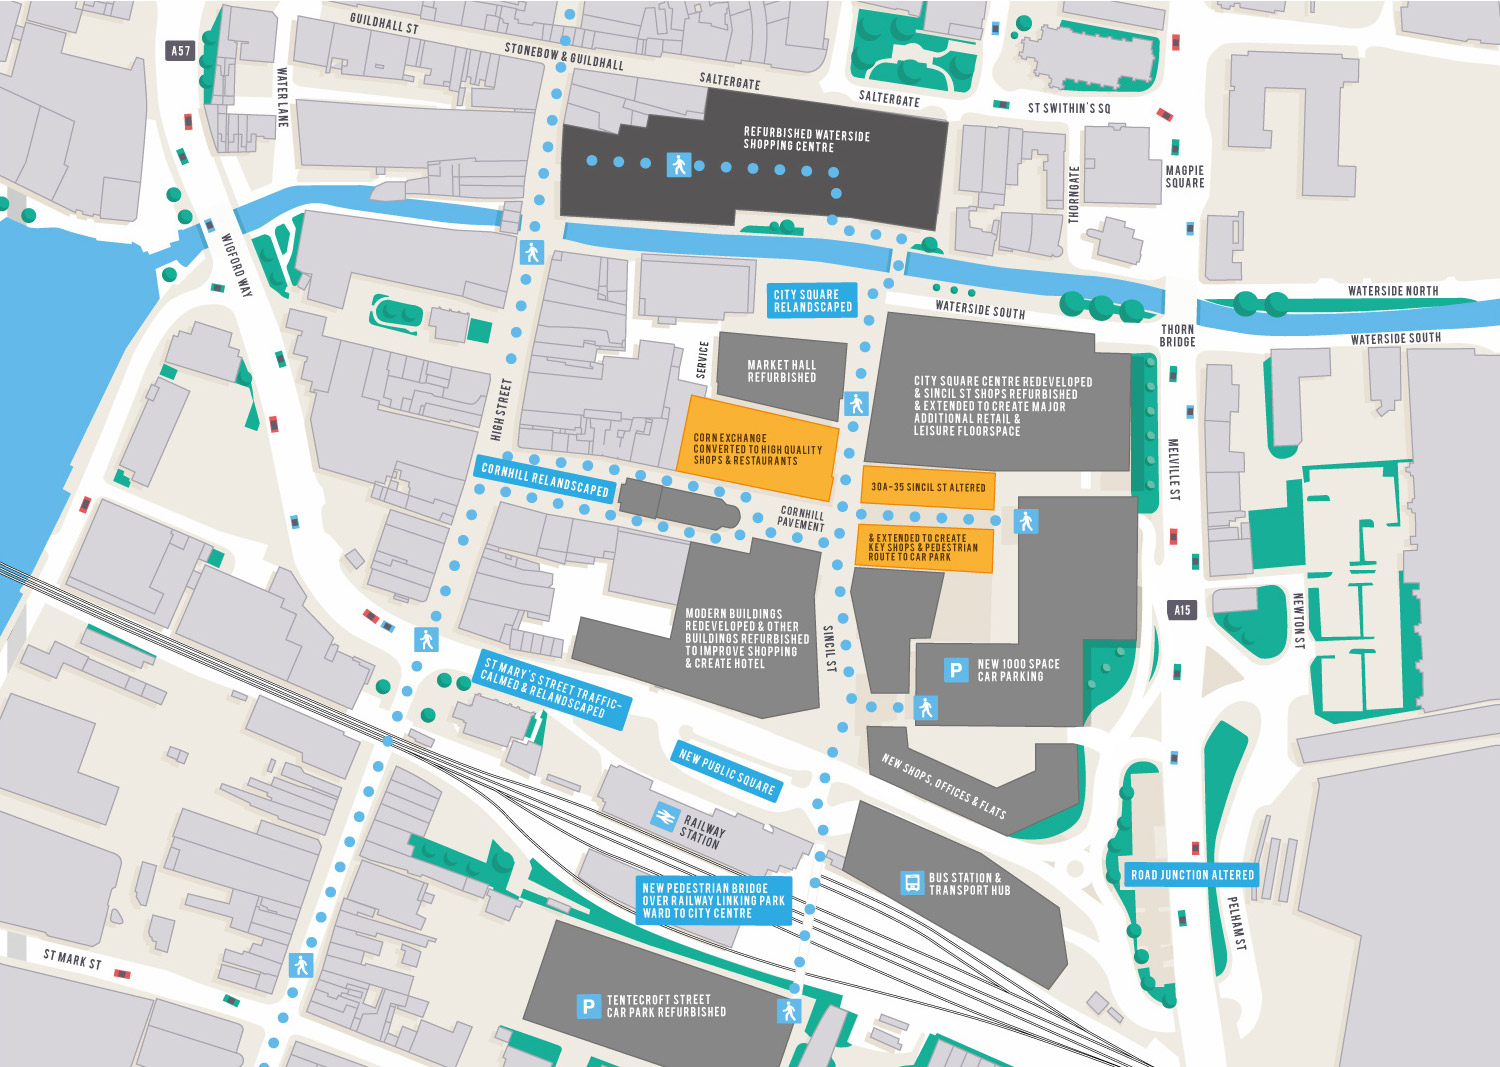 An overview of the Cornhill redevelopment as part of the wider Lindongate scheme